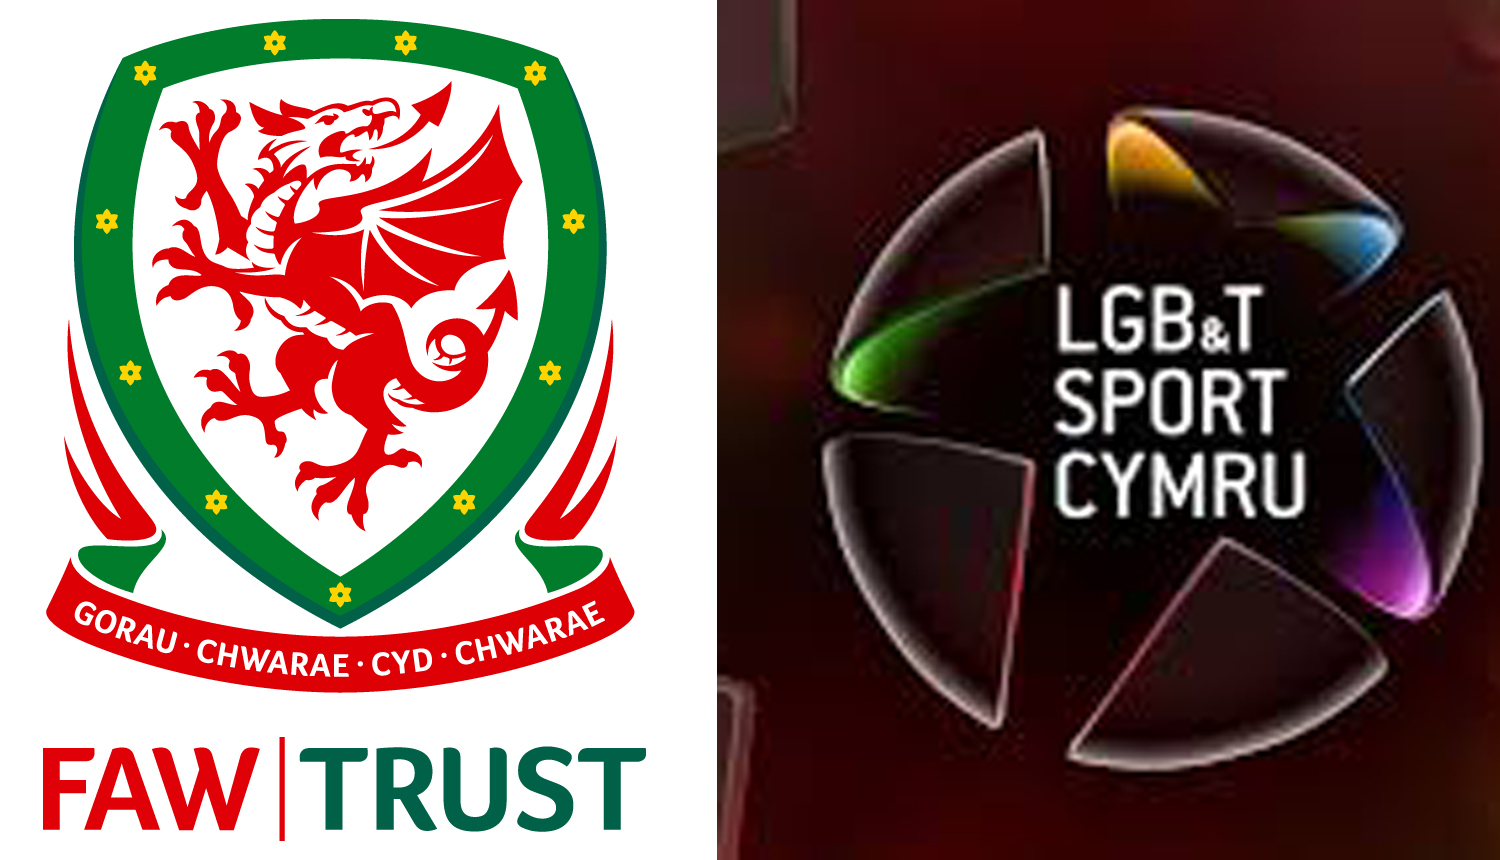 Volunteer Opportunity: FAW Trust and LGB&T Sport Cymru Champion